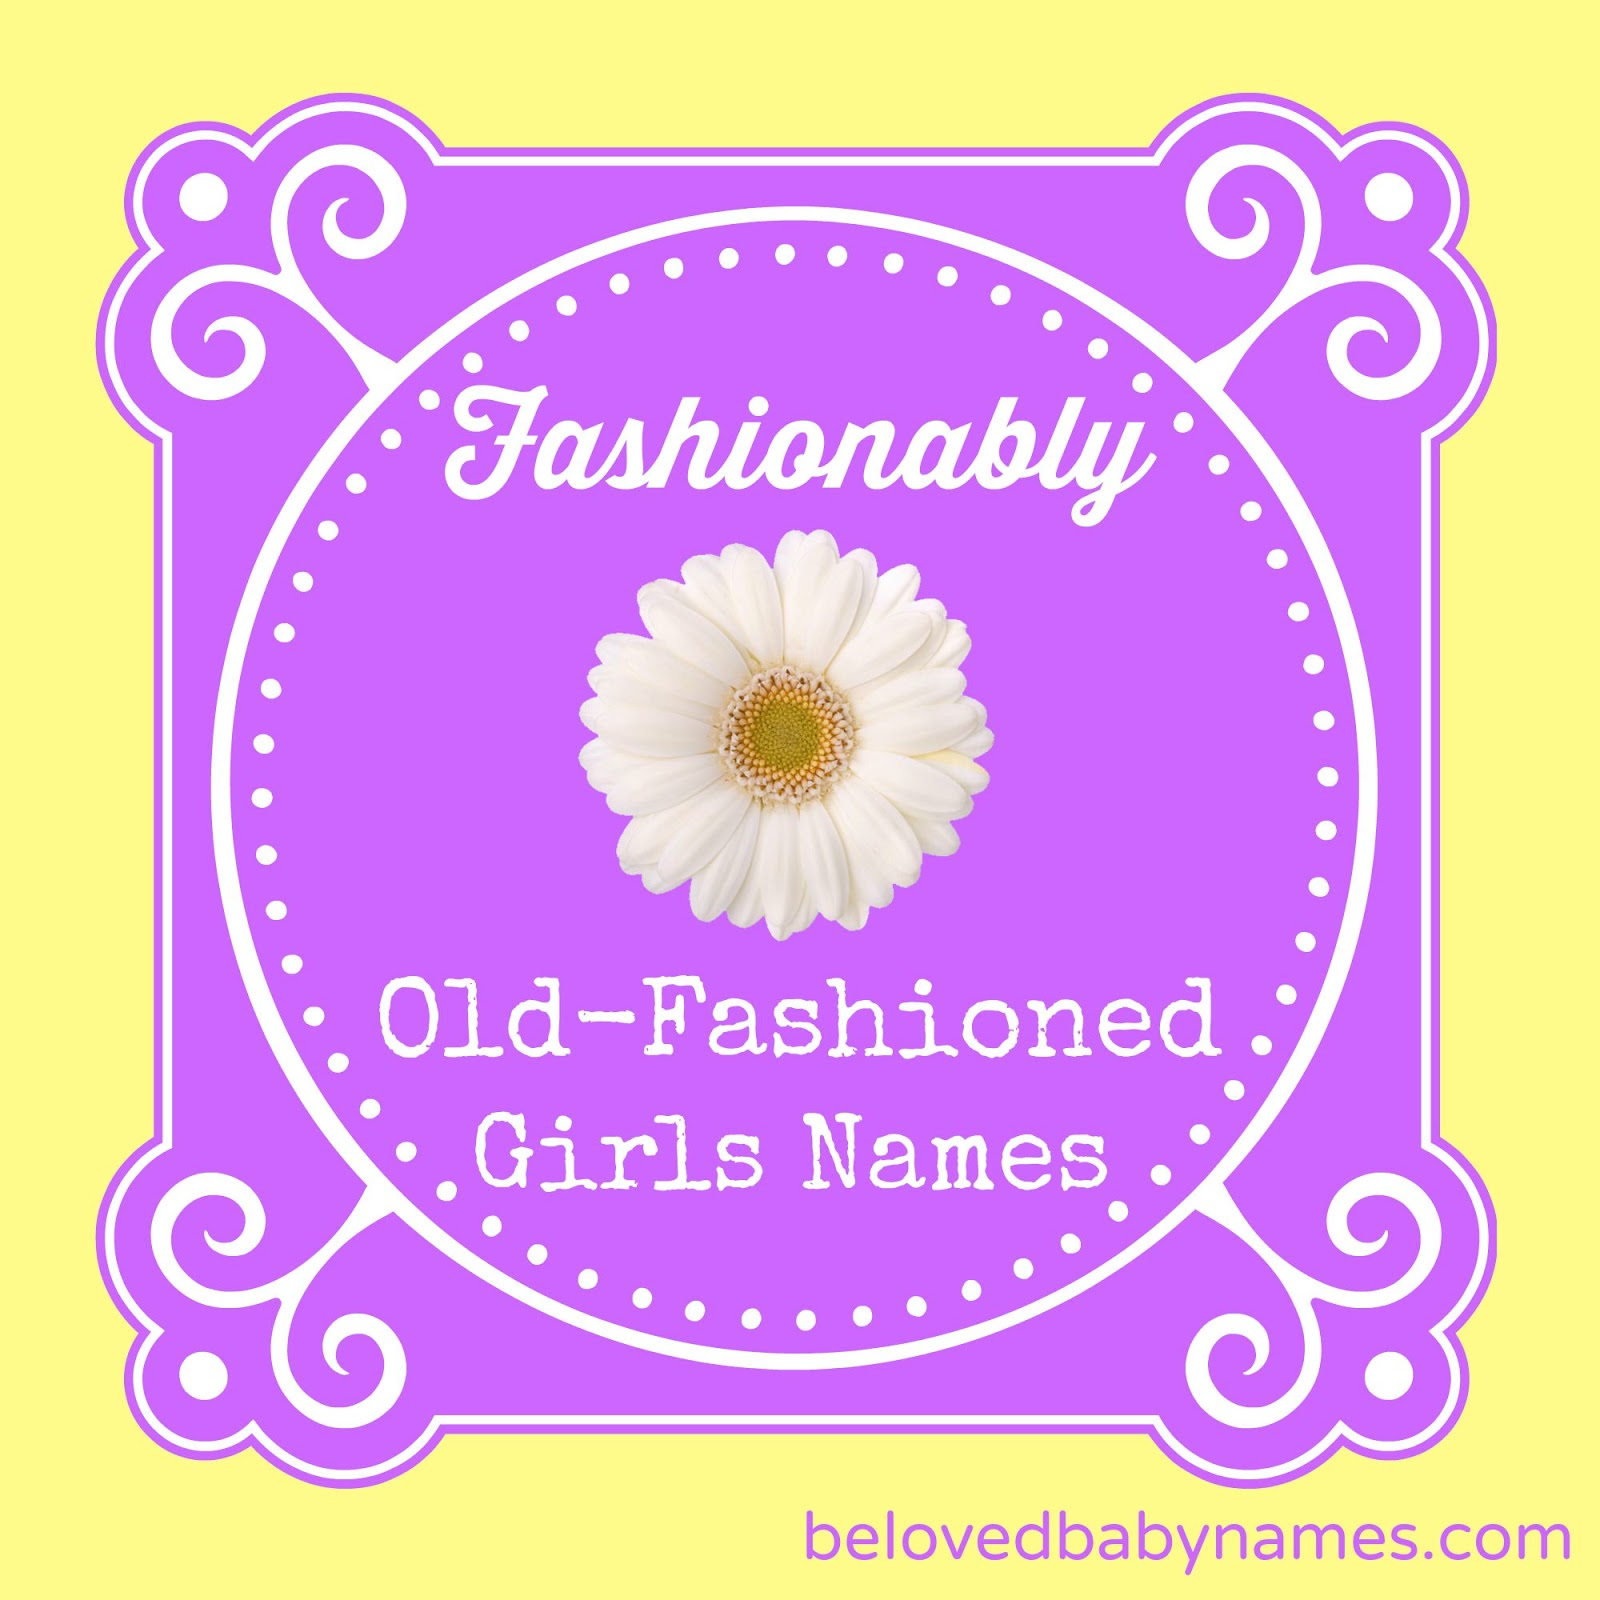 Old-fashioned girls names sex images 29